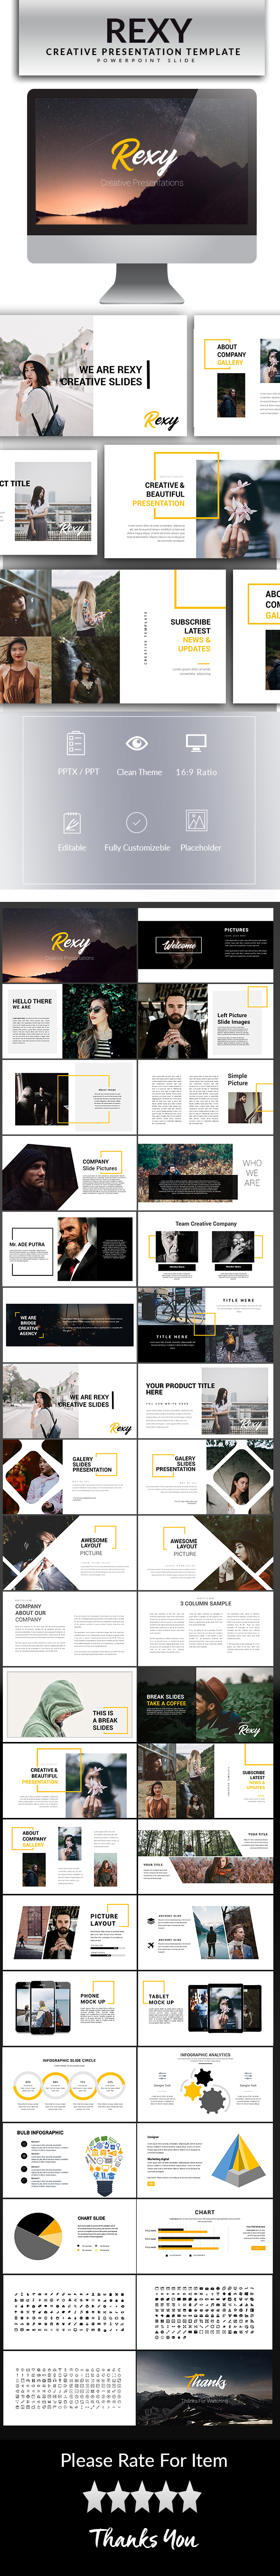 Rexy Powerpoint Template - PowerPoint Templates Presentation Templates